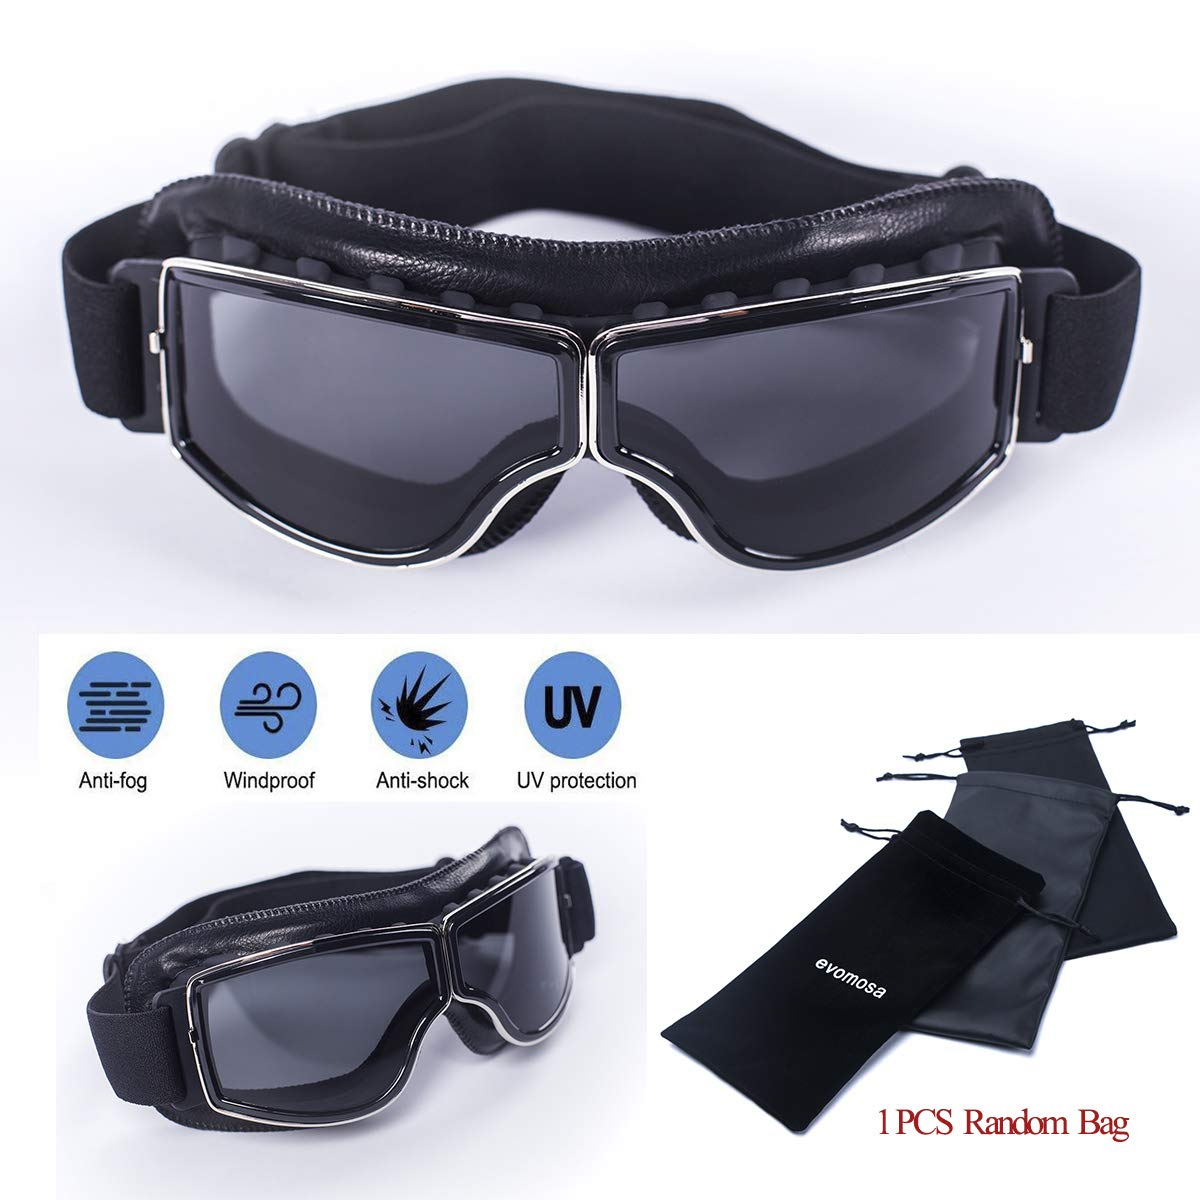 a2dc176efc2 evomosa Motorcycle Riding Goggles Vintage Aviator Pilot Glasses  Anti-Scratch Dust Proof Copper Scooter ATV Dirt Off Road Racing Eyewear Ski  Goggles for Men ...